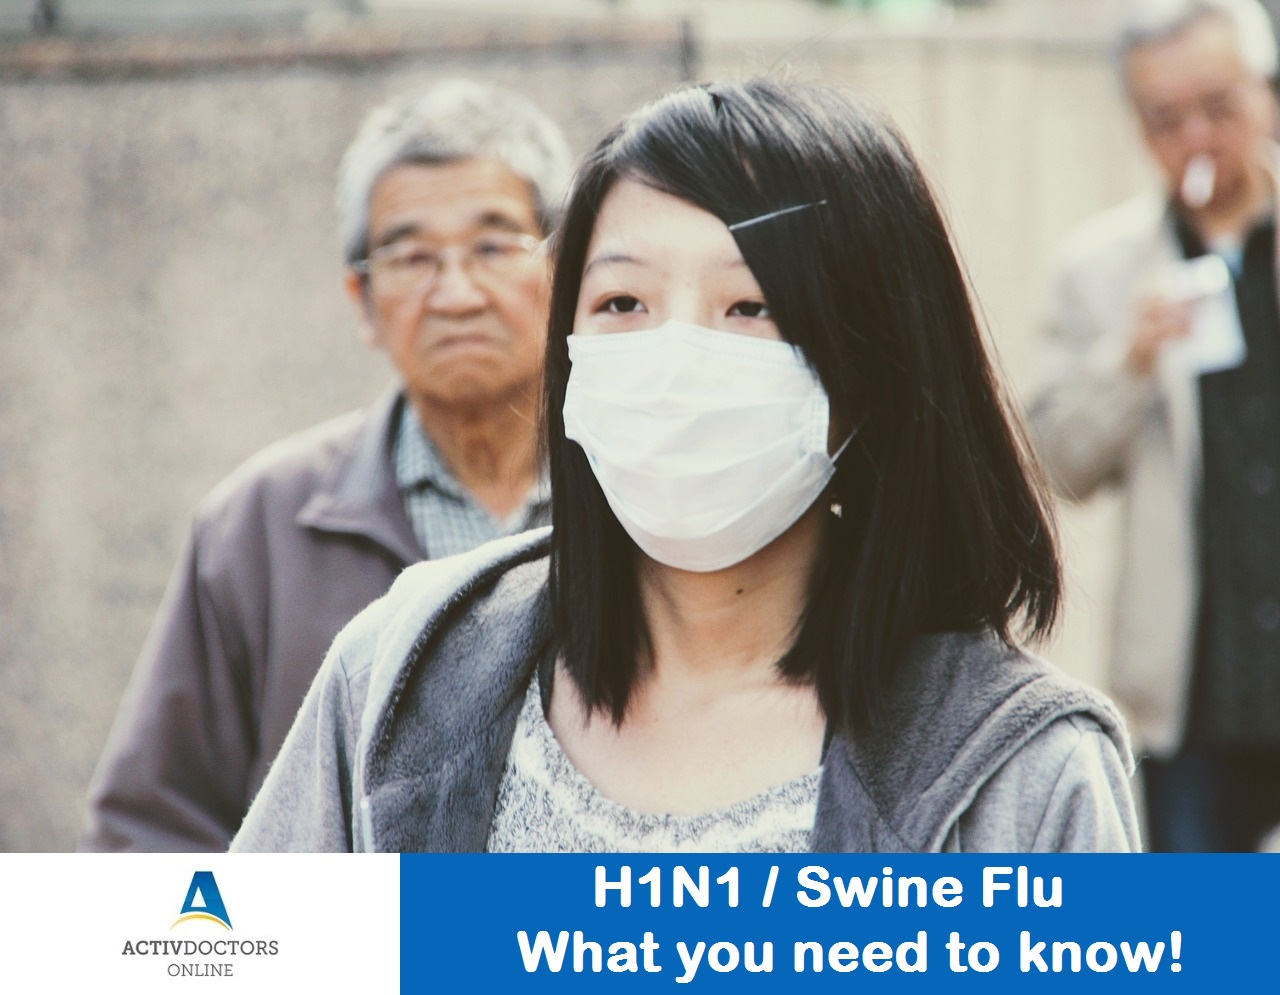 H1N1 / Swine Flu - What you need to know!